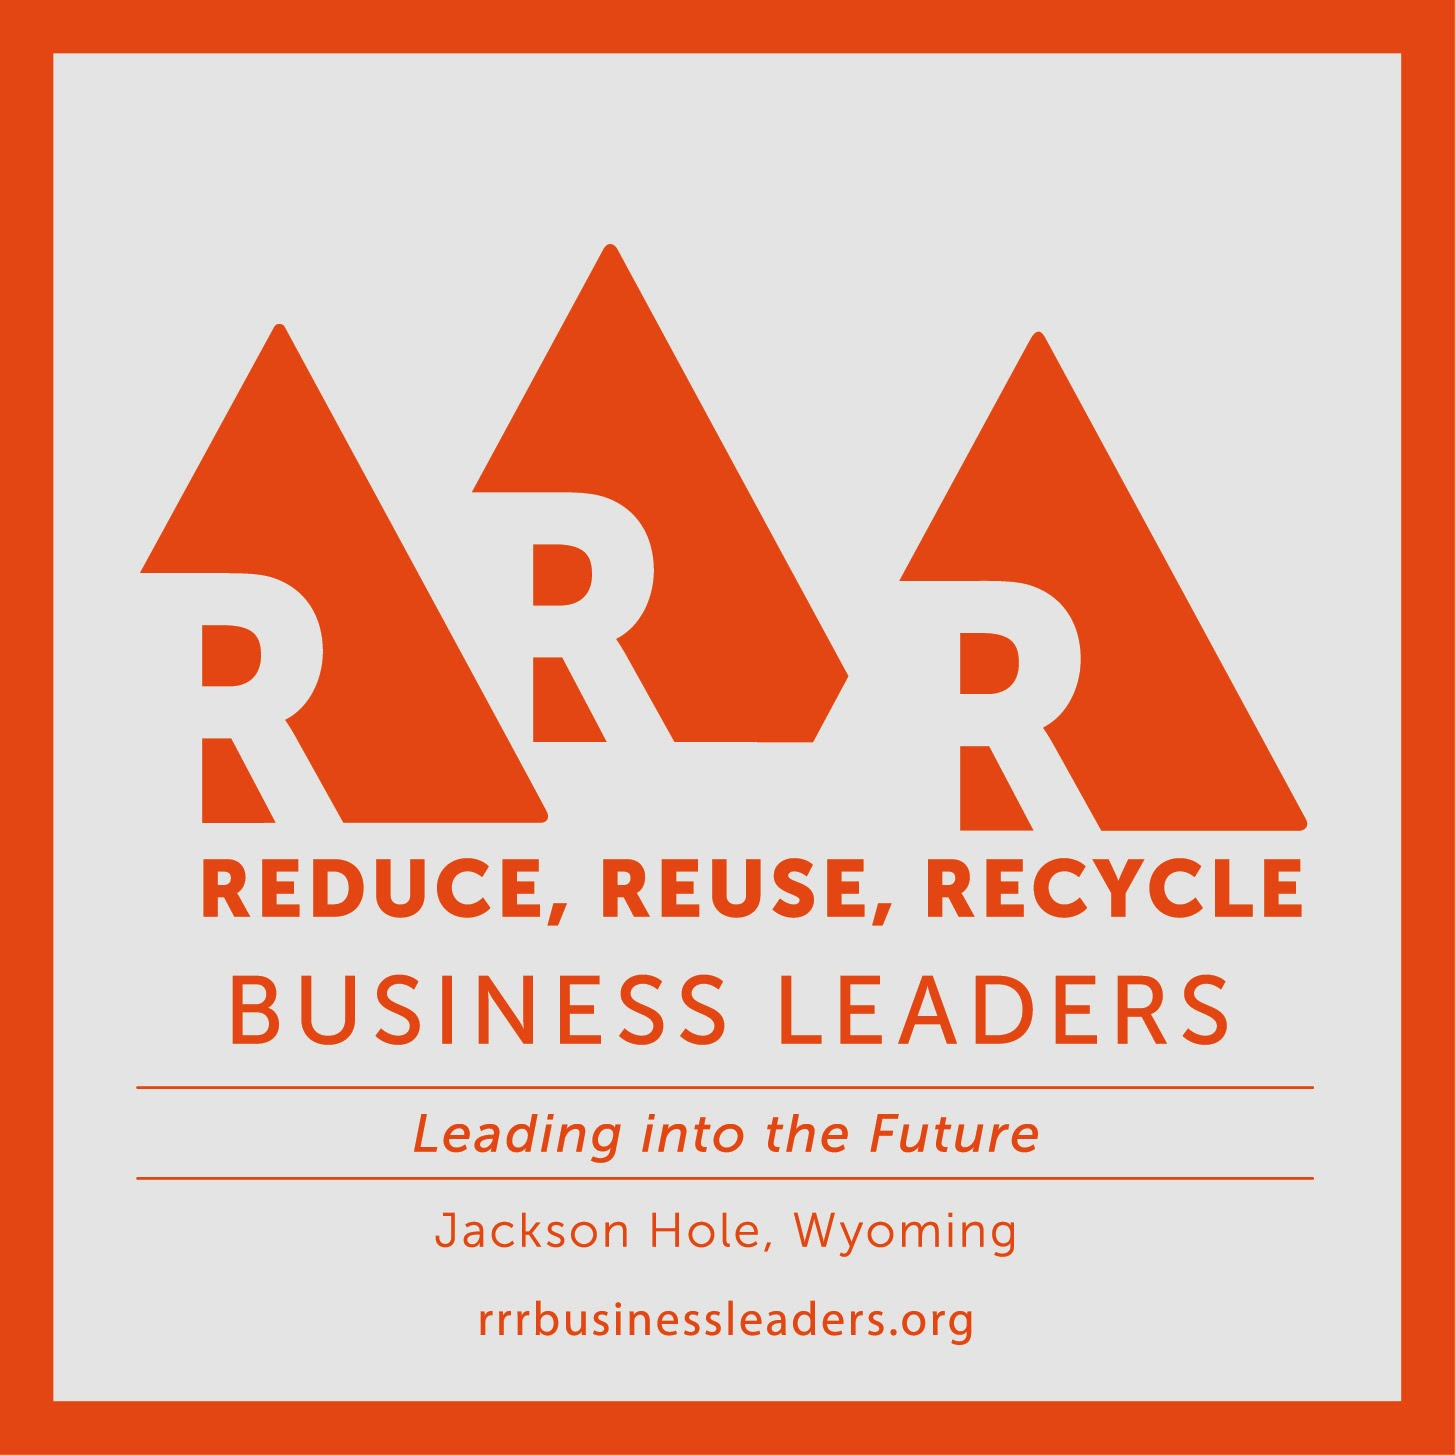 RRR Business Leaders - Jackson Hole Chamber of Commerce